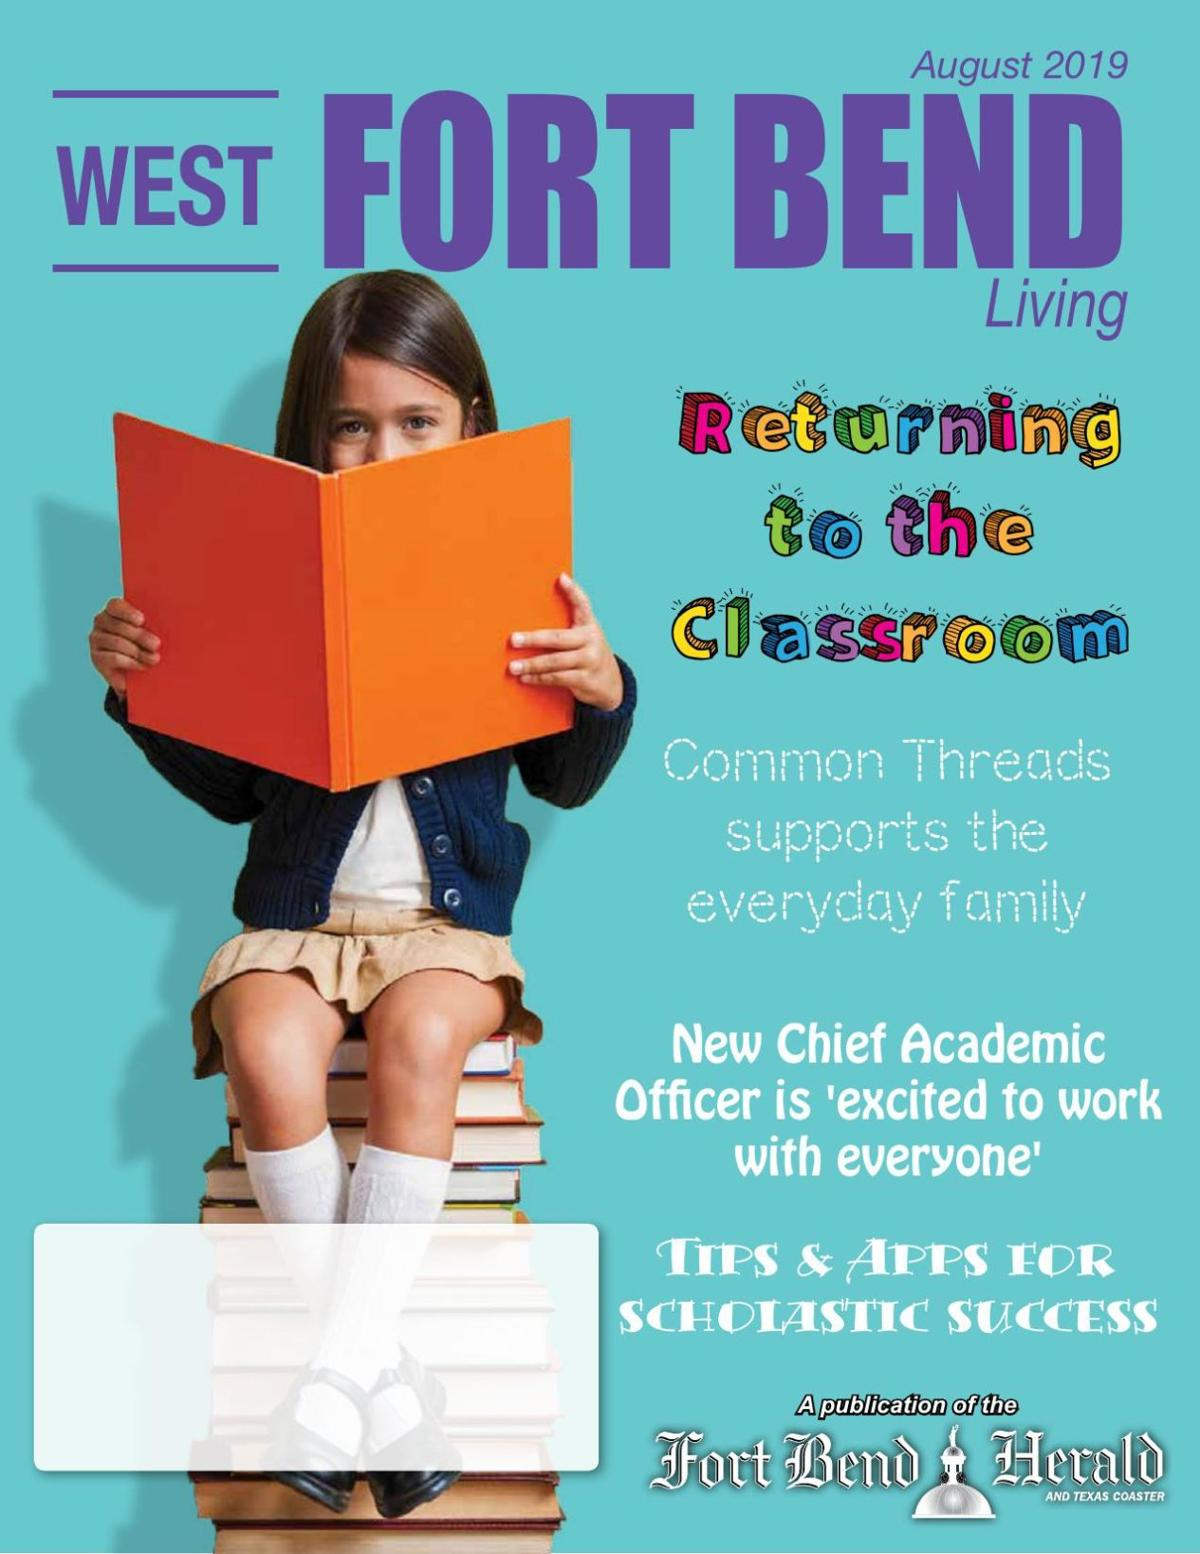 West Fort Bend LIving: August 2019